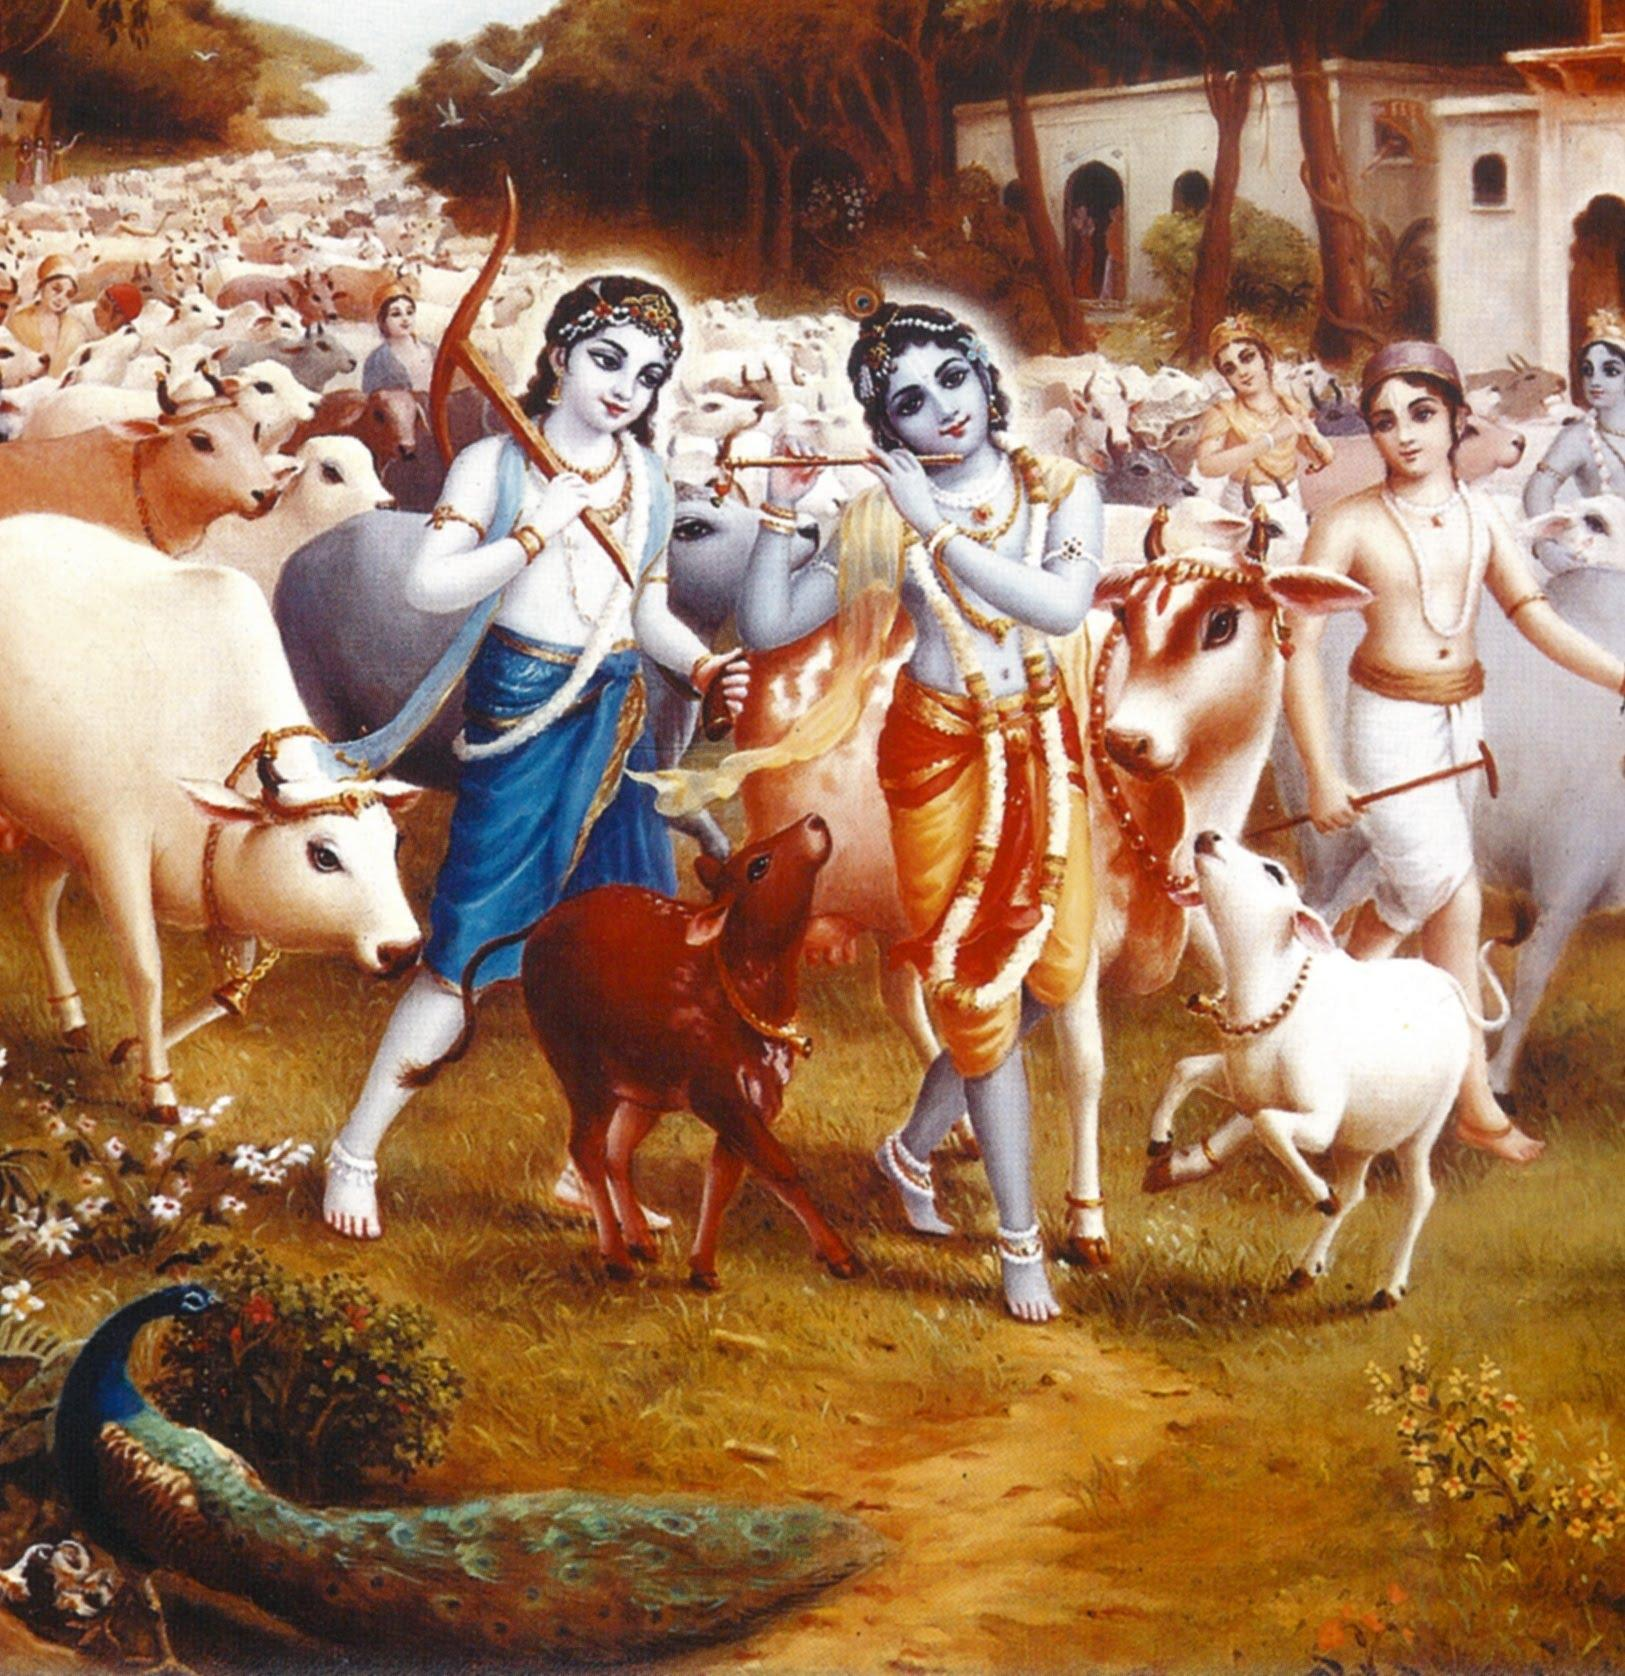 Animated Hd Wallpapers 1080p Free Download Download Krishna With Cows Janmashtami Wallpapers For